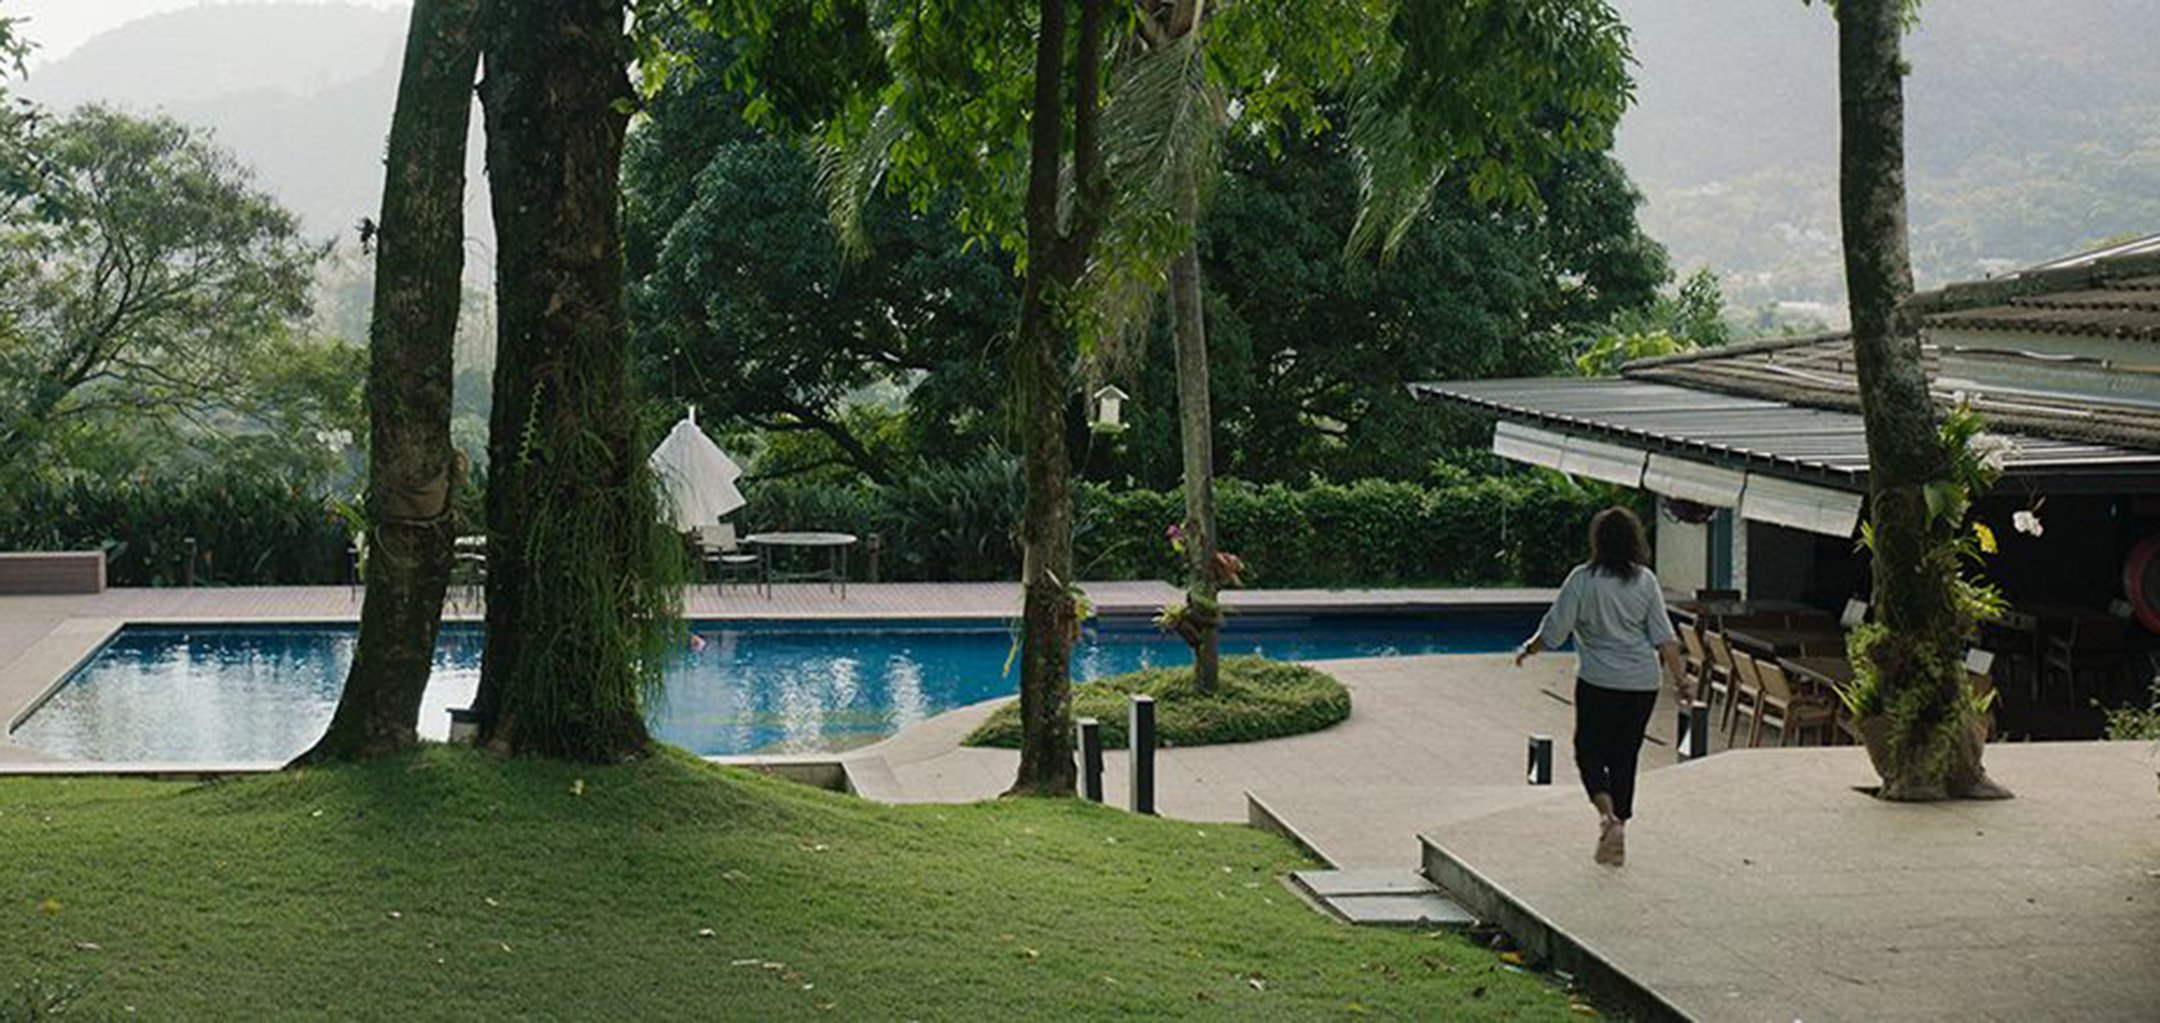 A woman strolling by a backyard pool in an idyllic setting in a still from 'Three Summers' (2019)